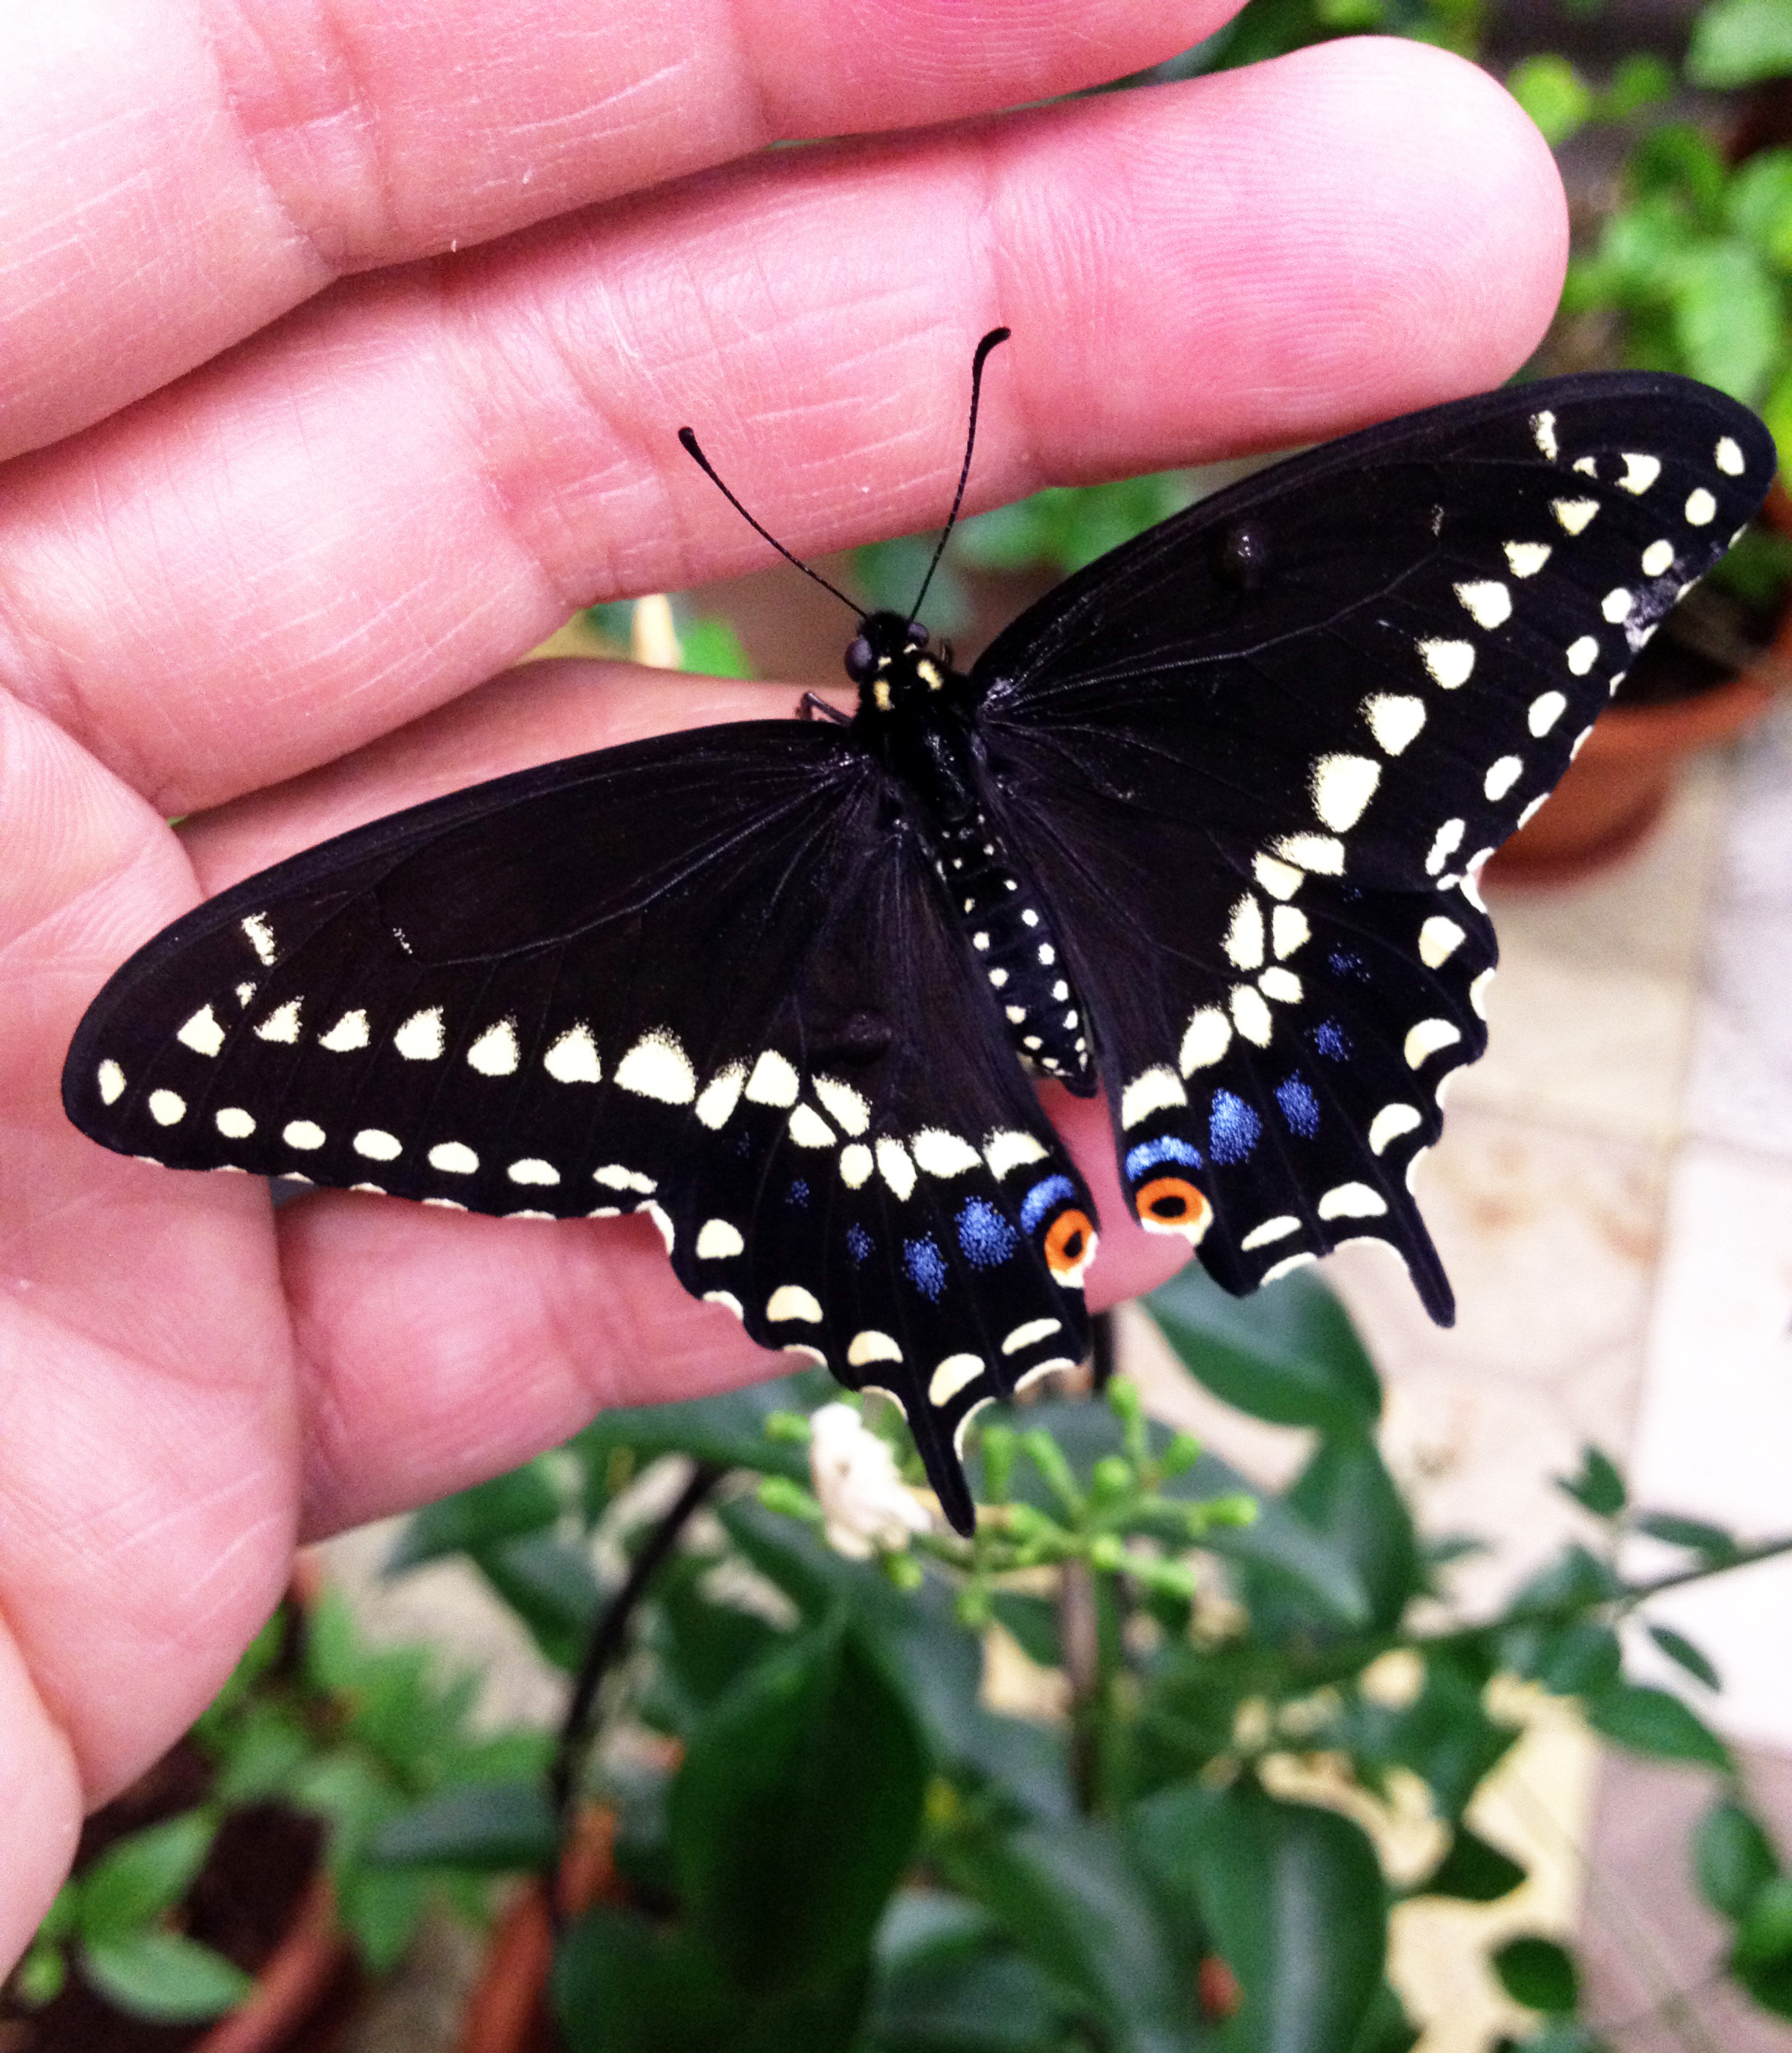 Purple spotted swallowtail - photo#19